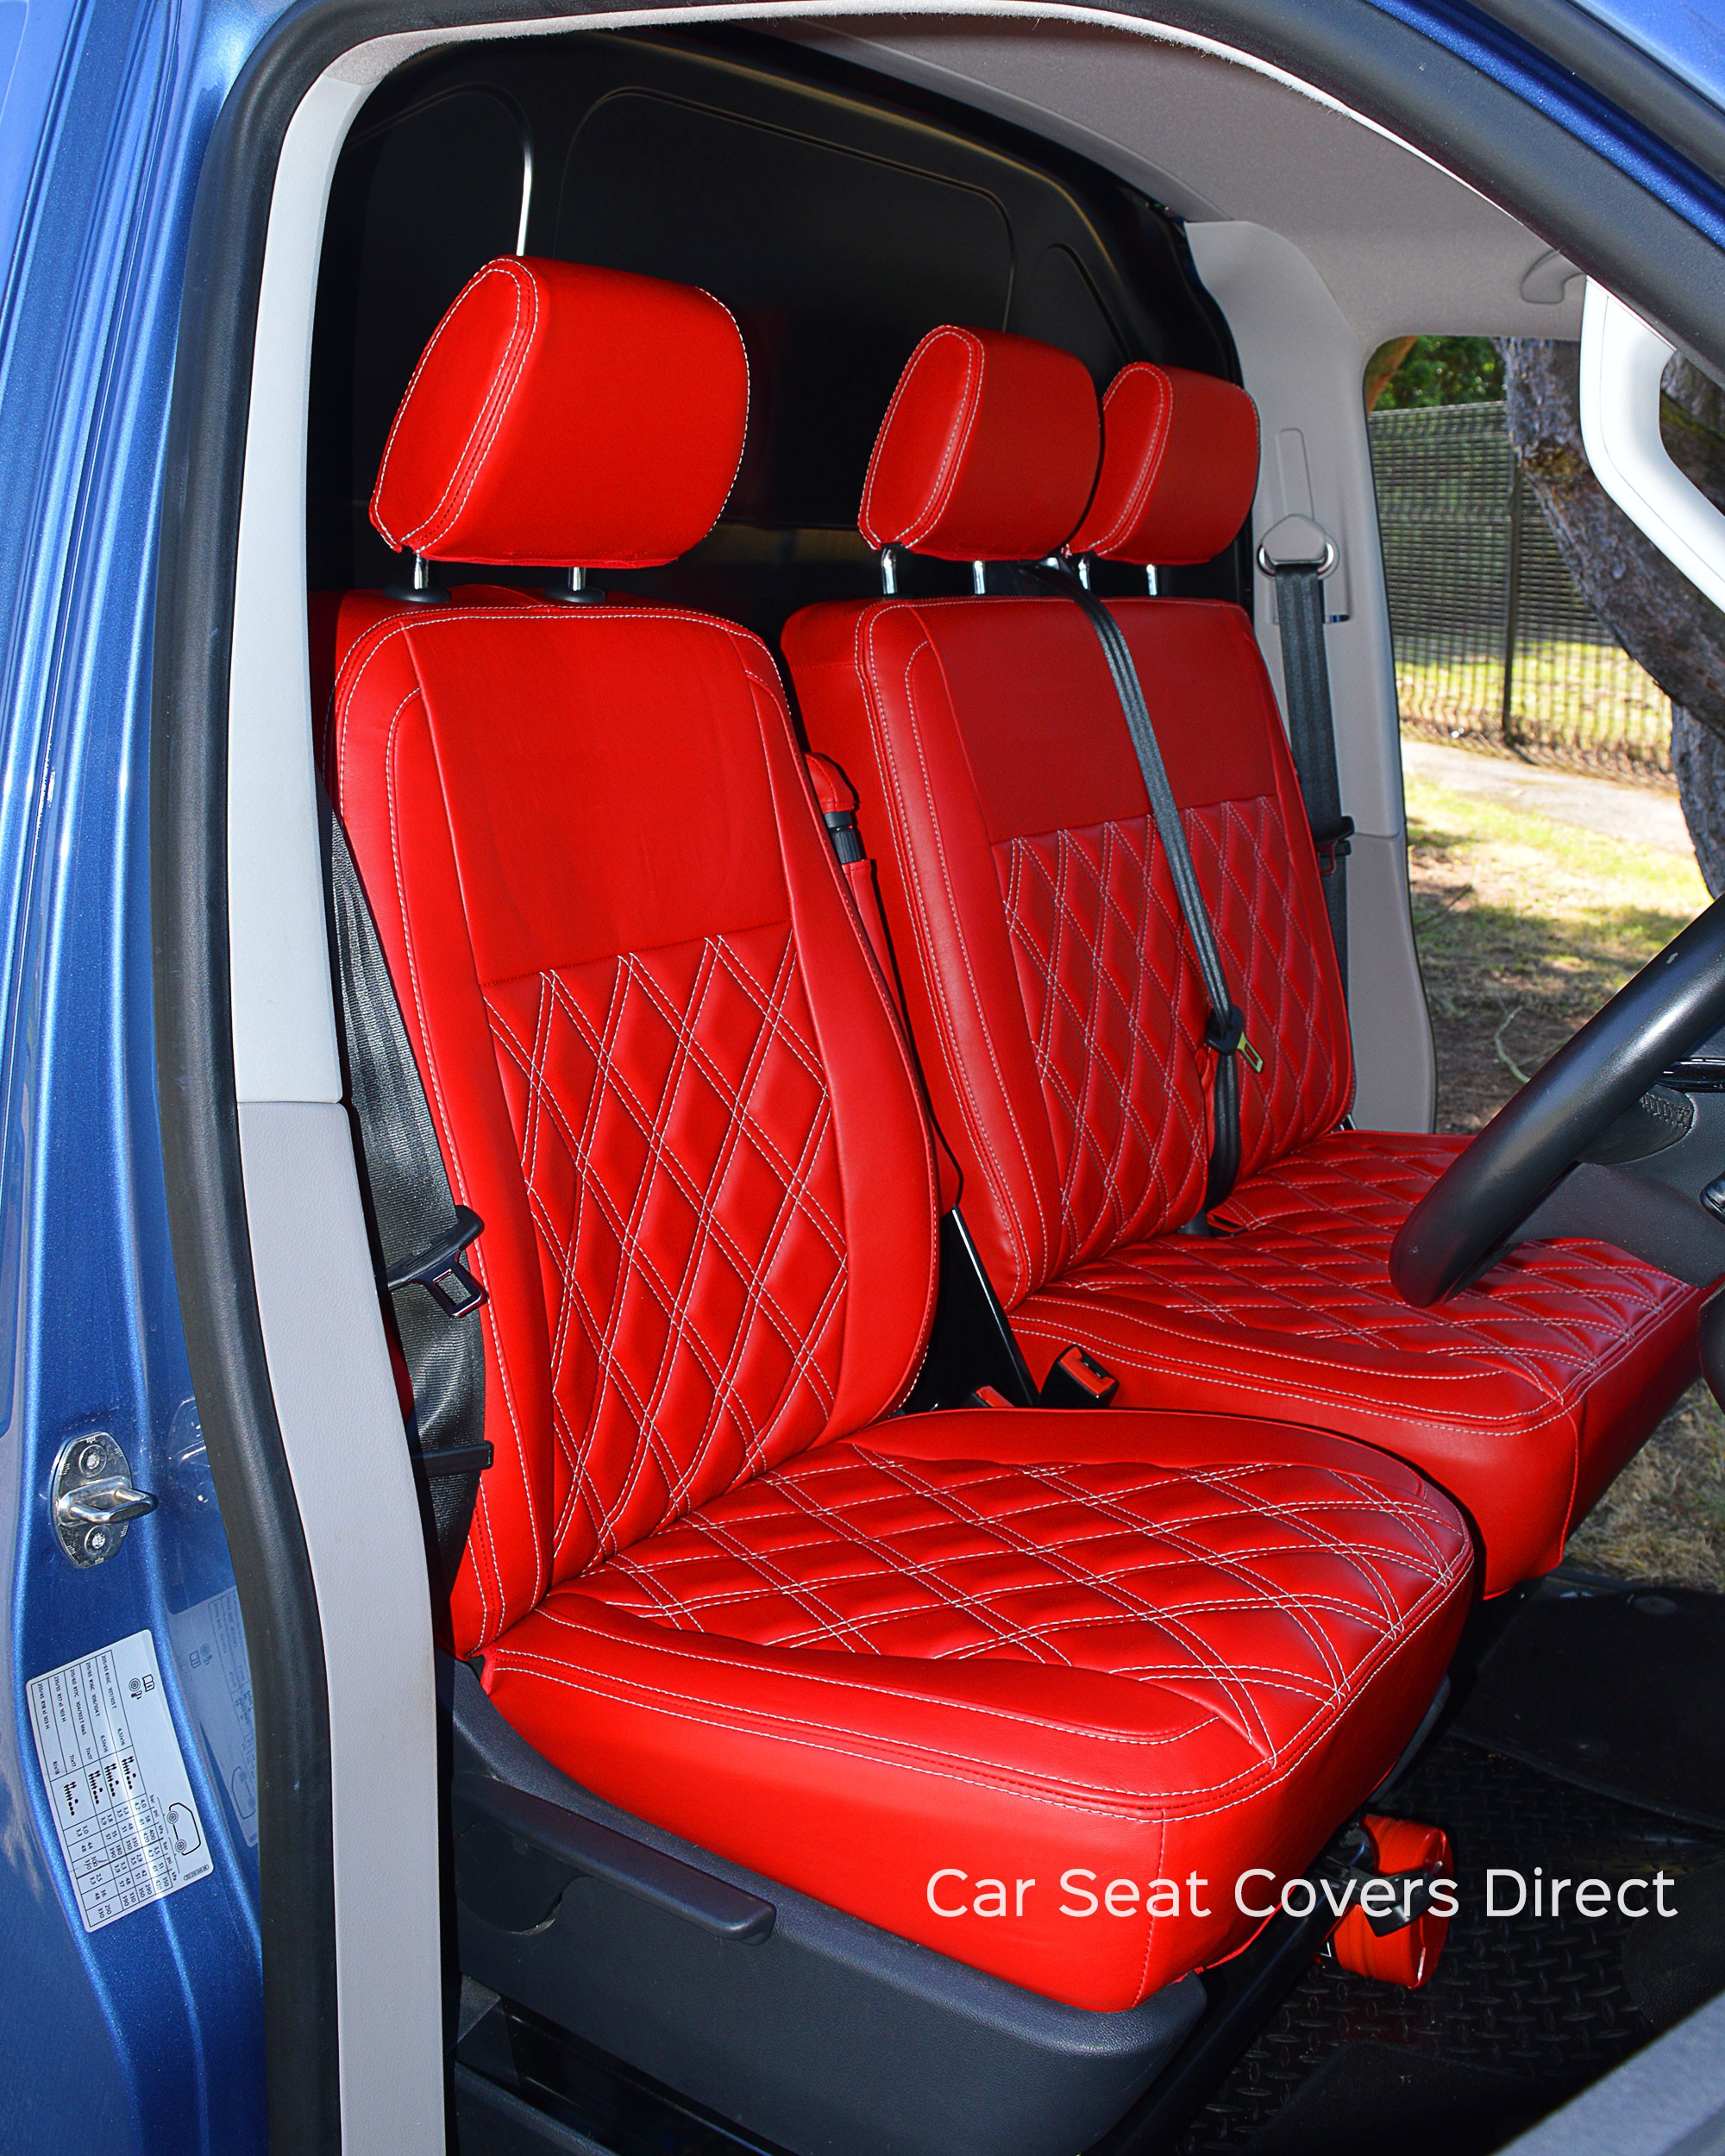 volkswagen vw transporter t5 tailored red seat covers car seat covers direct tailored to your. Black Bedroom Furniture Sets. Home Design Ideas